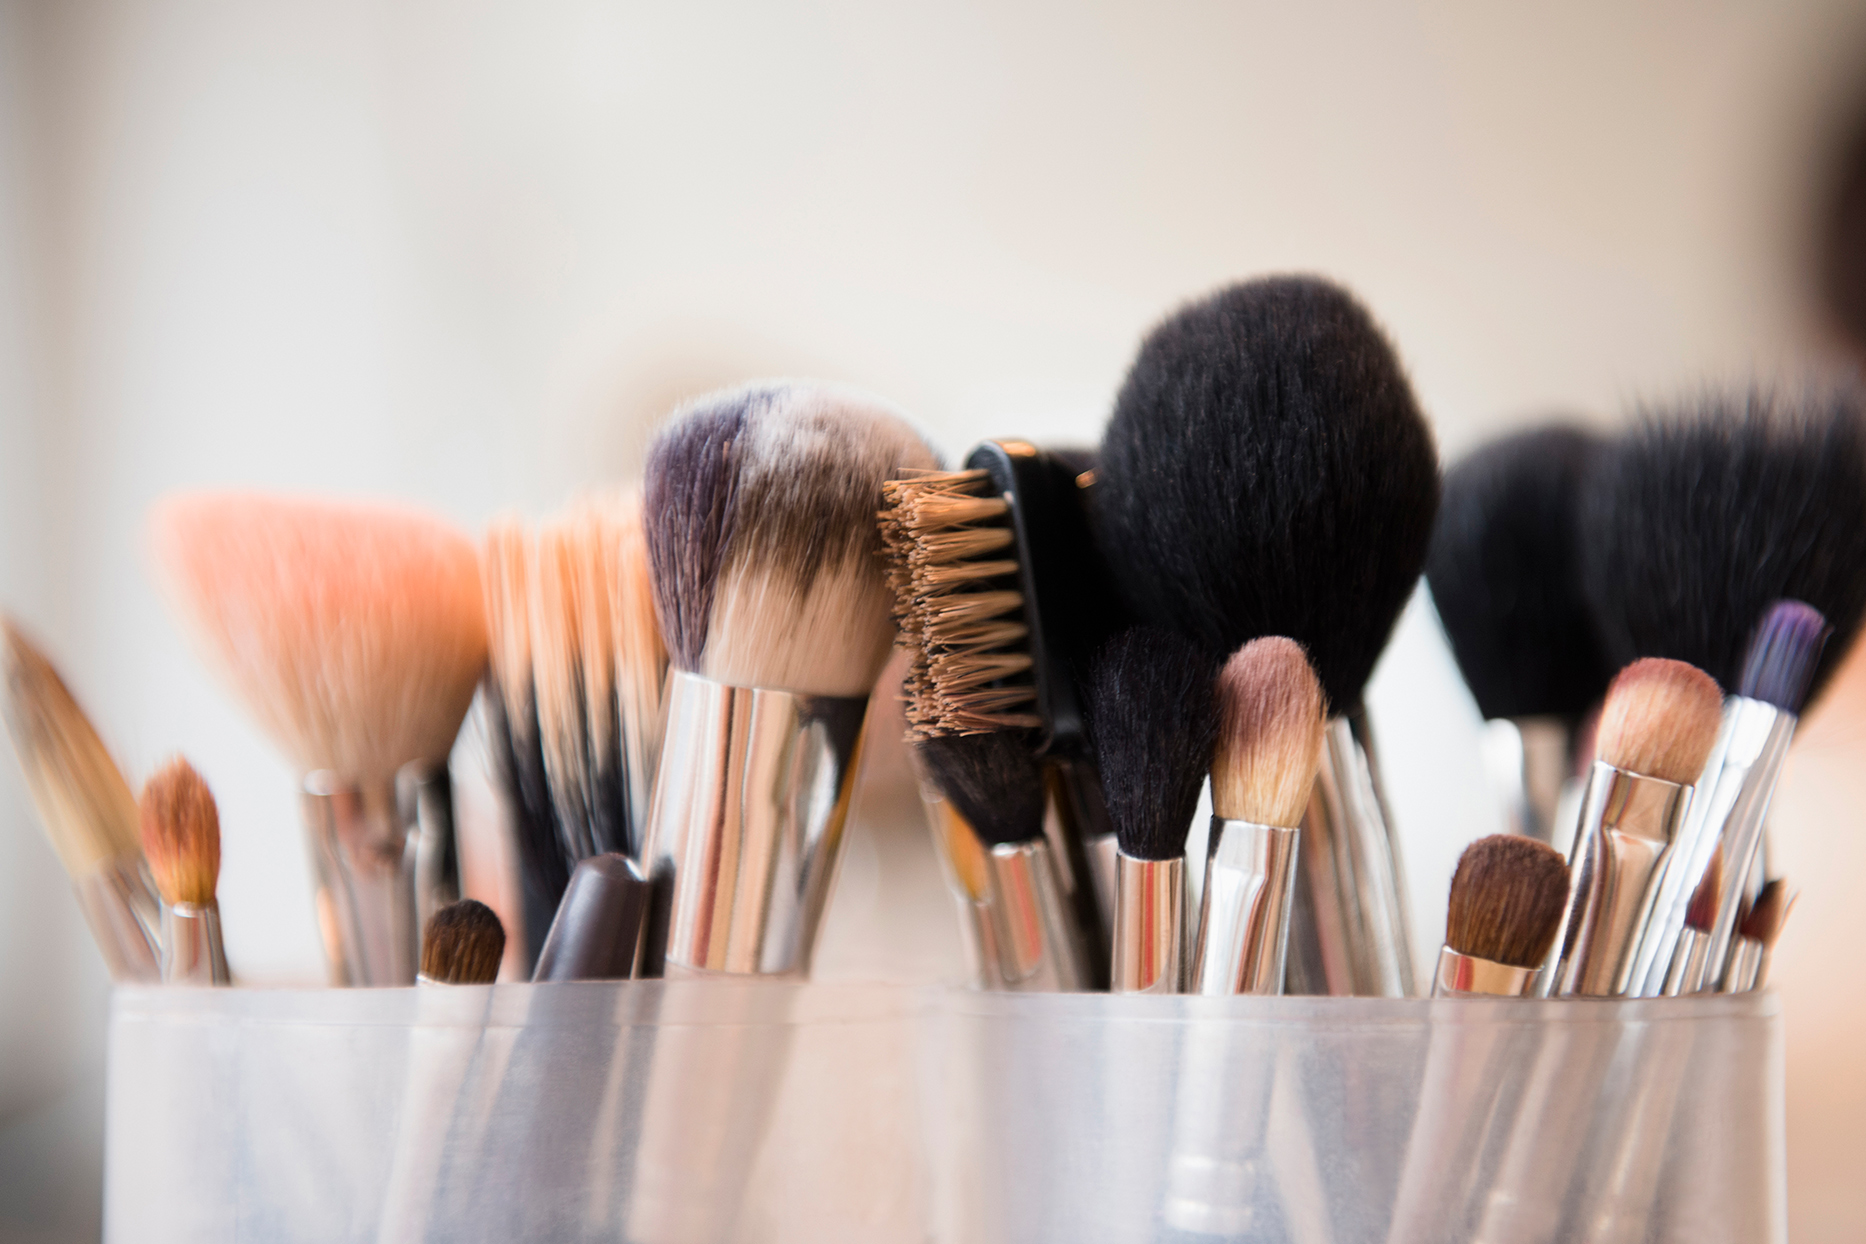 assorted make up brushes in container